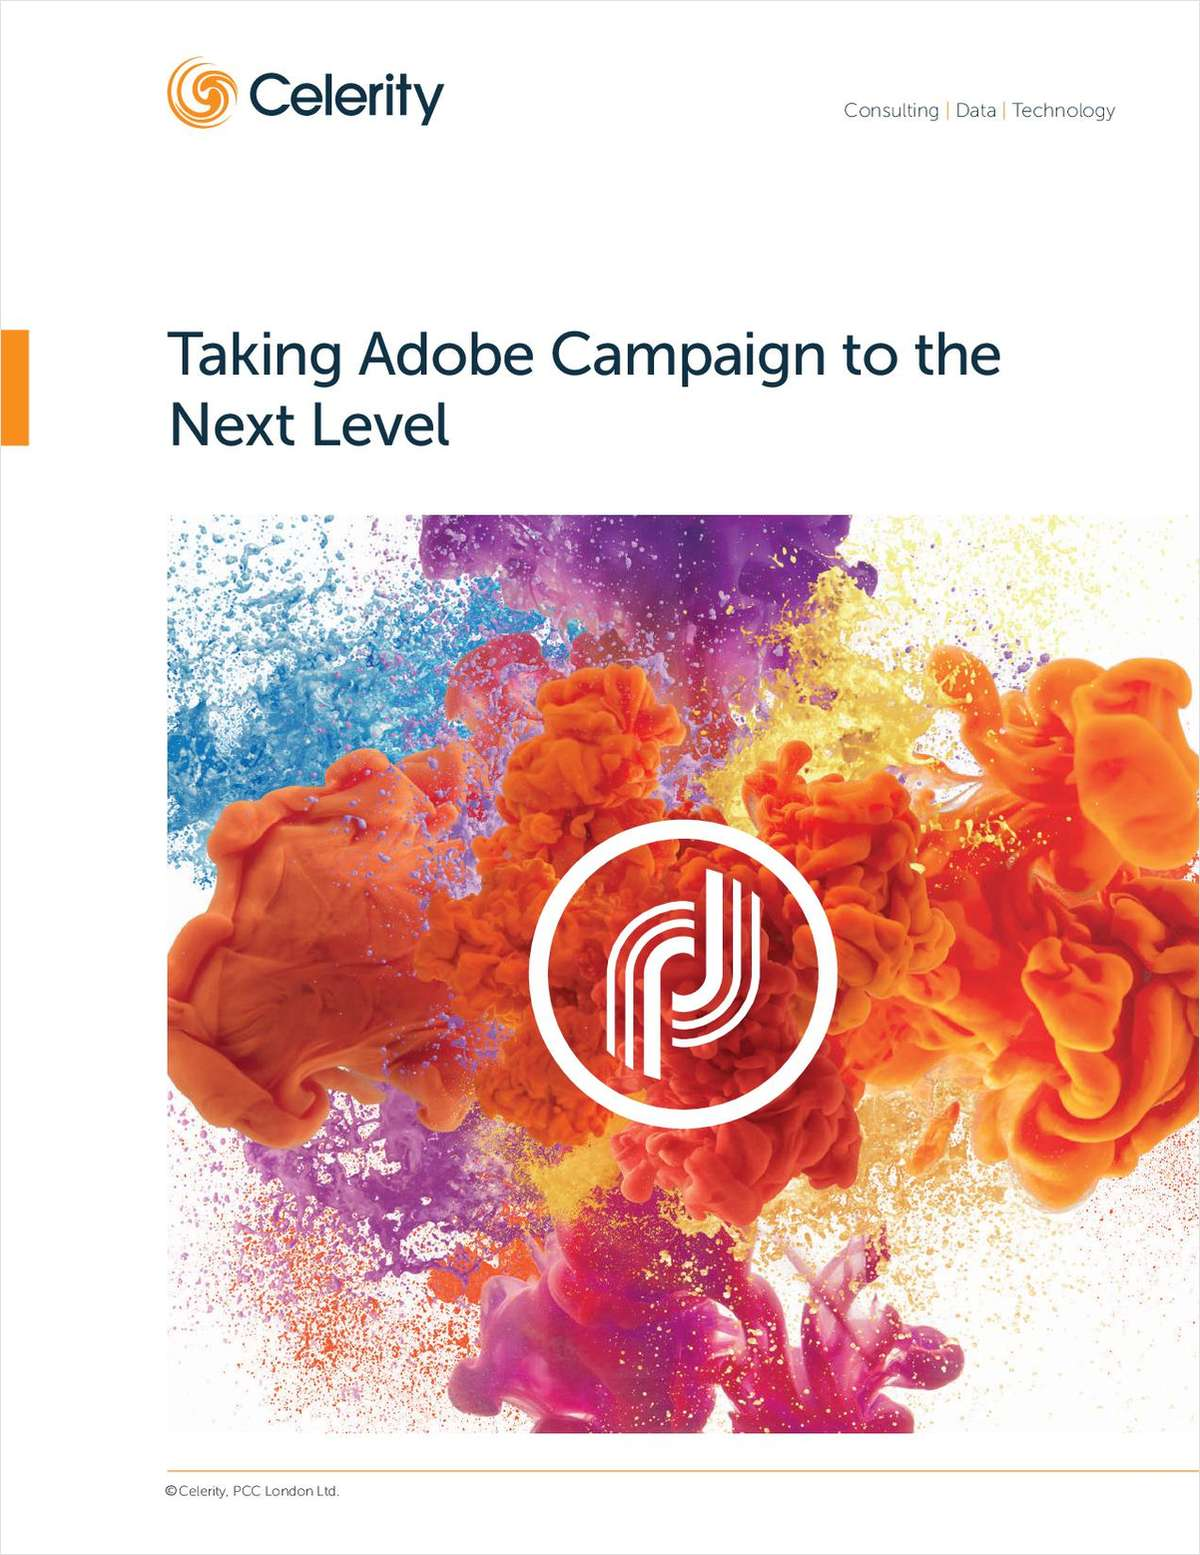 Take Adobe Campaign to The Next Level for Enterprise Marketing